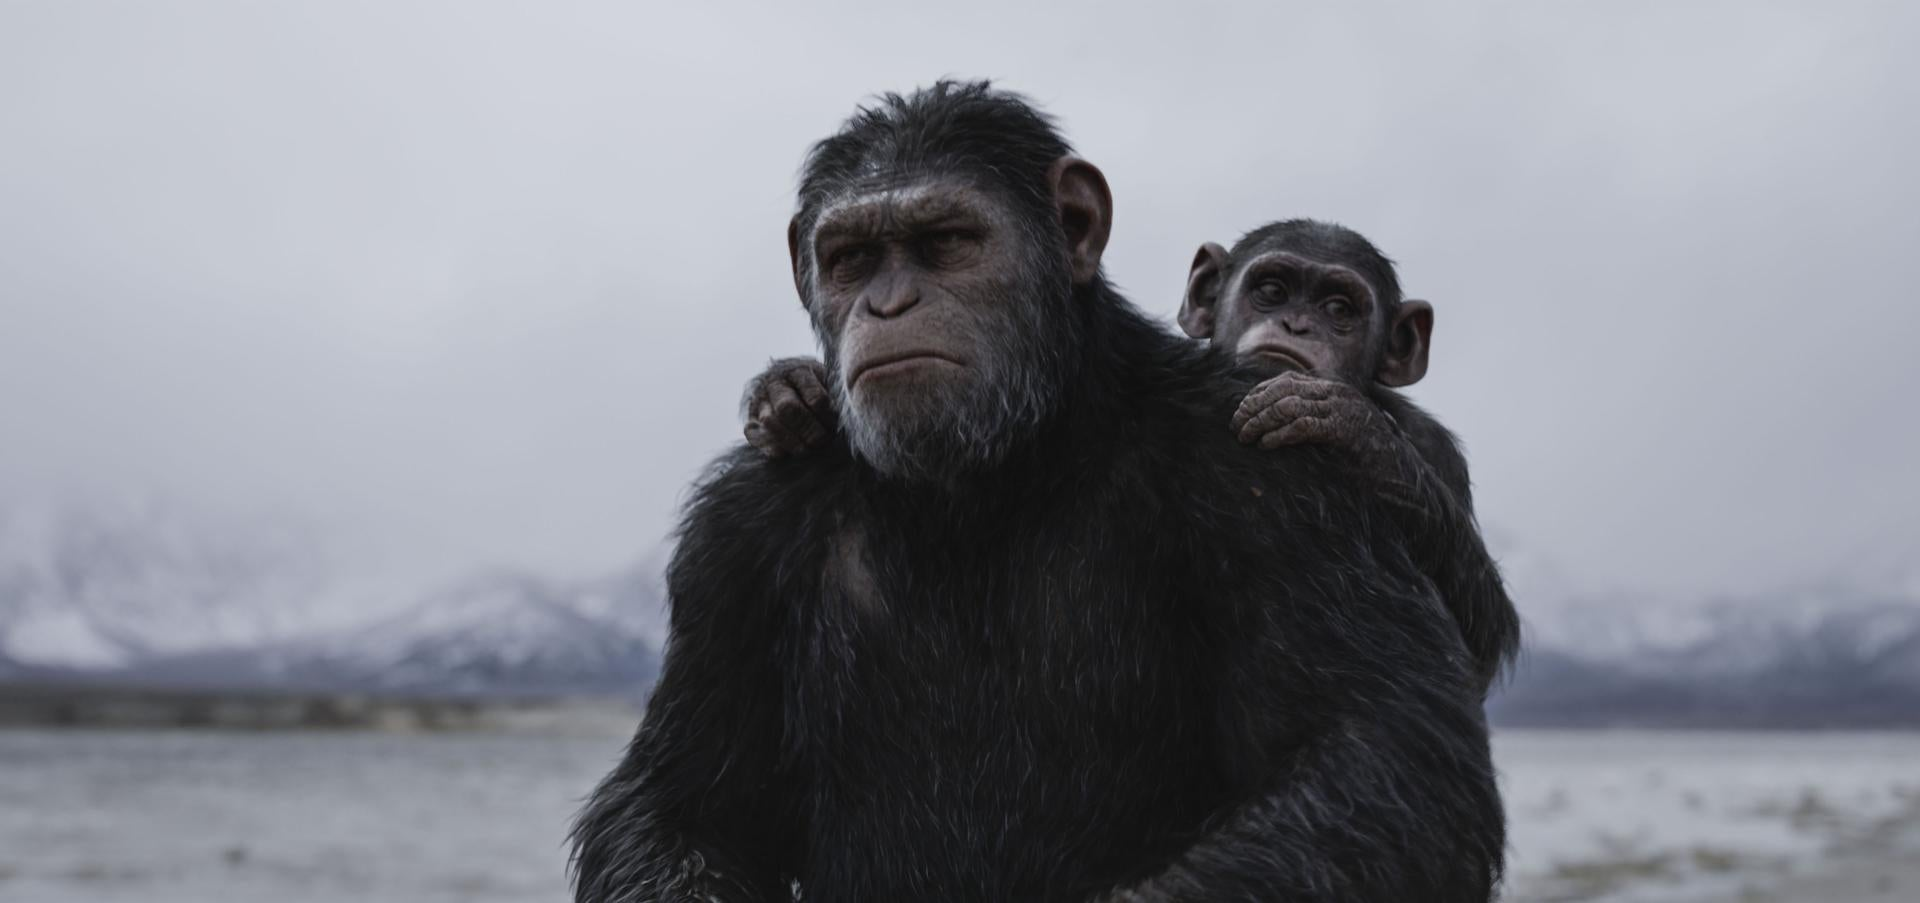 """Andy Serkis as Caesar (with Devyn Dalton as Cornelius) in """"War for the Planet of the Apes."""""""